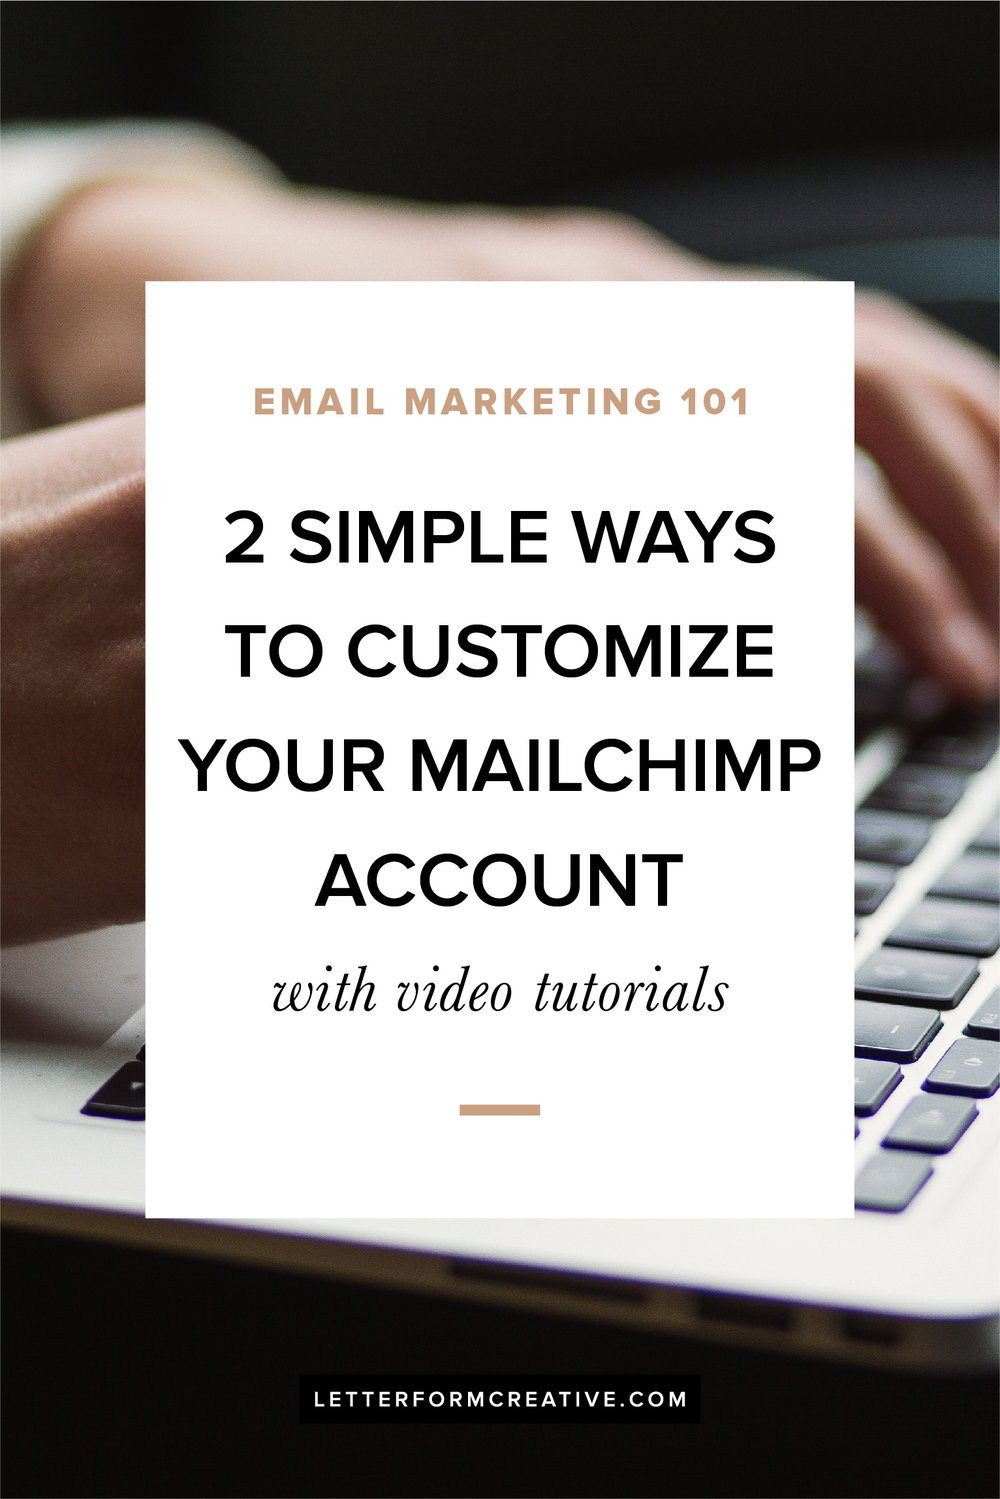 Are you using Mailchimp for your email marketing? If so, learn how to create a template for consistent, easy to send emails. Then customize your confirmation to create a professional, on-brand impression. Click through for video tutorials that will help you utilize Mailchimp to effectively grow your list!